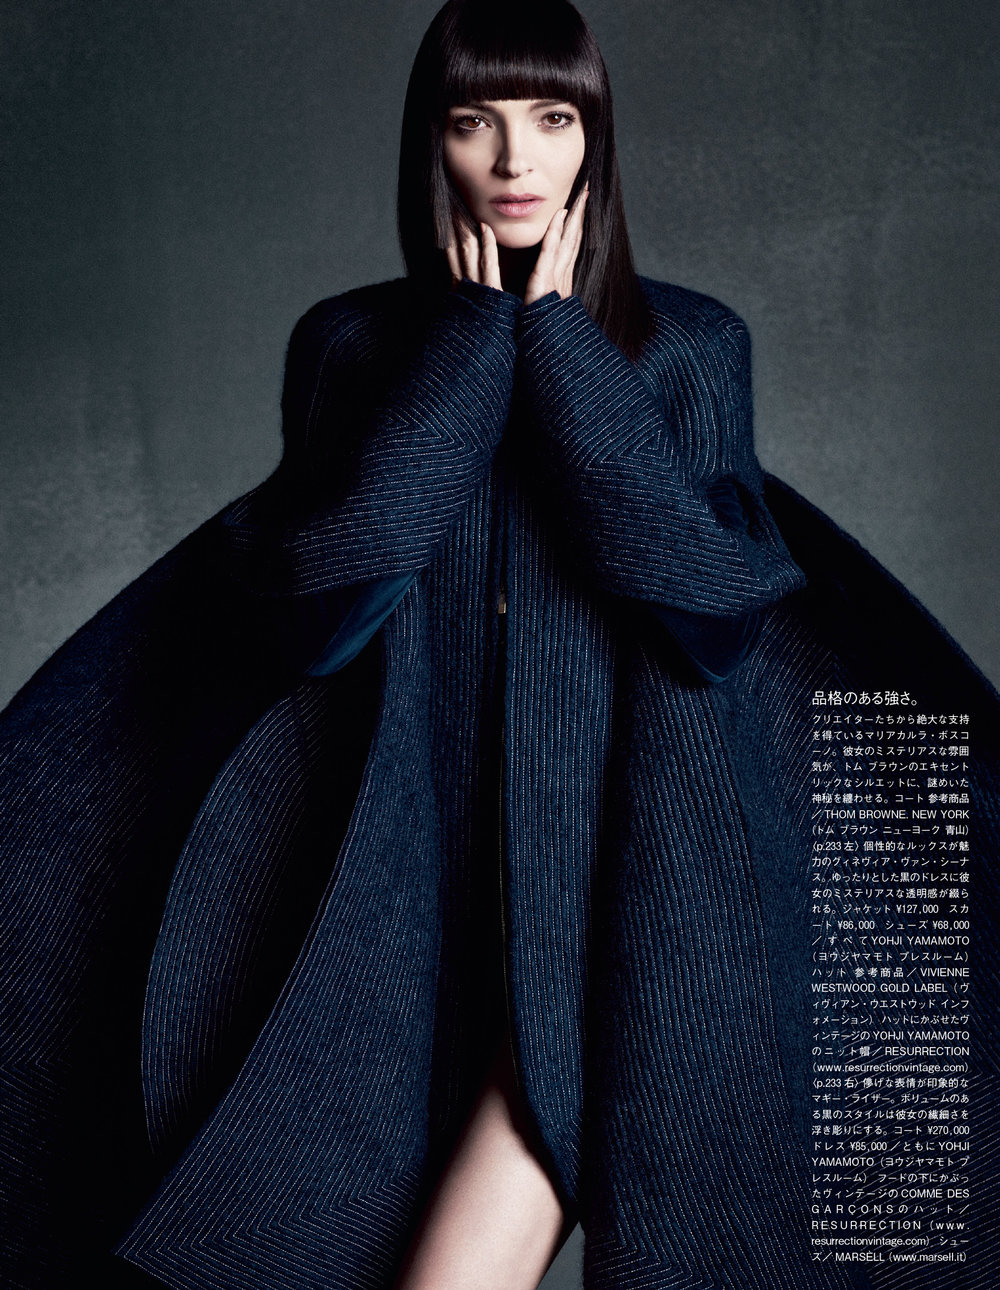 Giovanna-Battaglia-The-Icons-Of-Perfections-Vogue-Japan-15th-Anniversary-Issue-Luigi-Iango-2.jpg